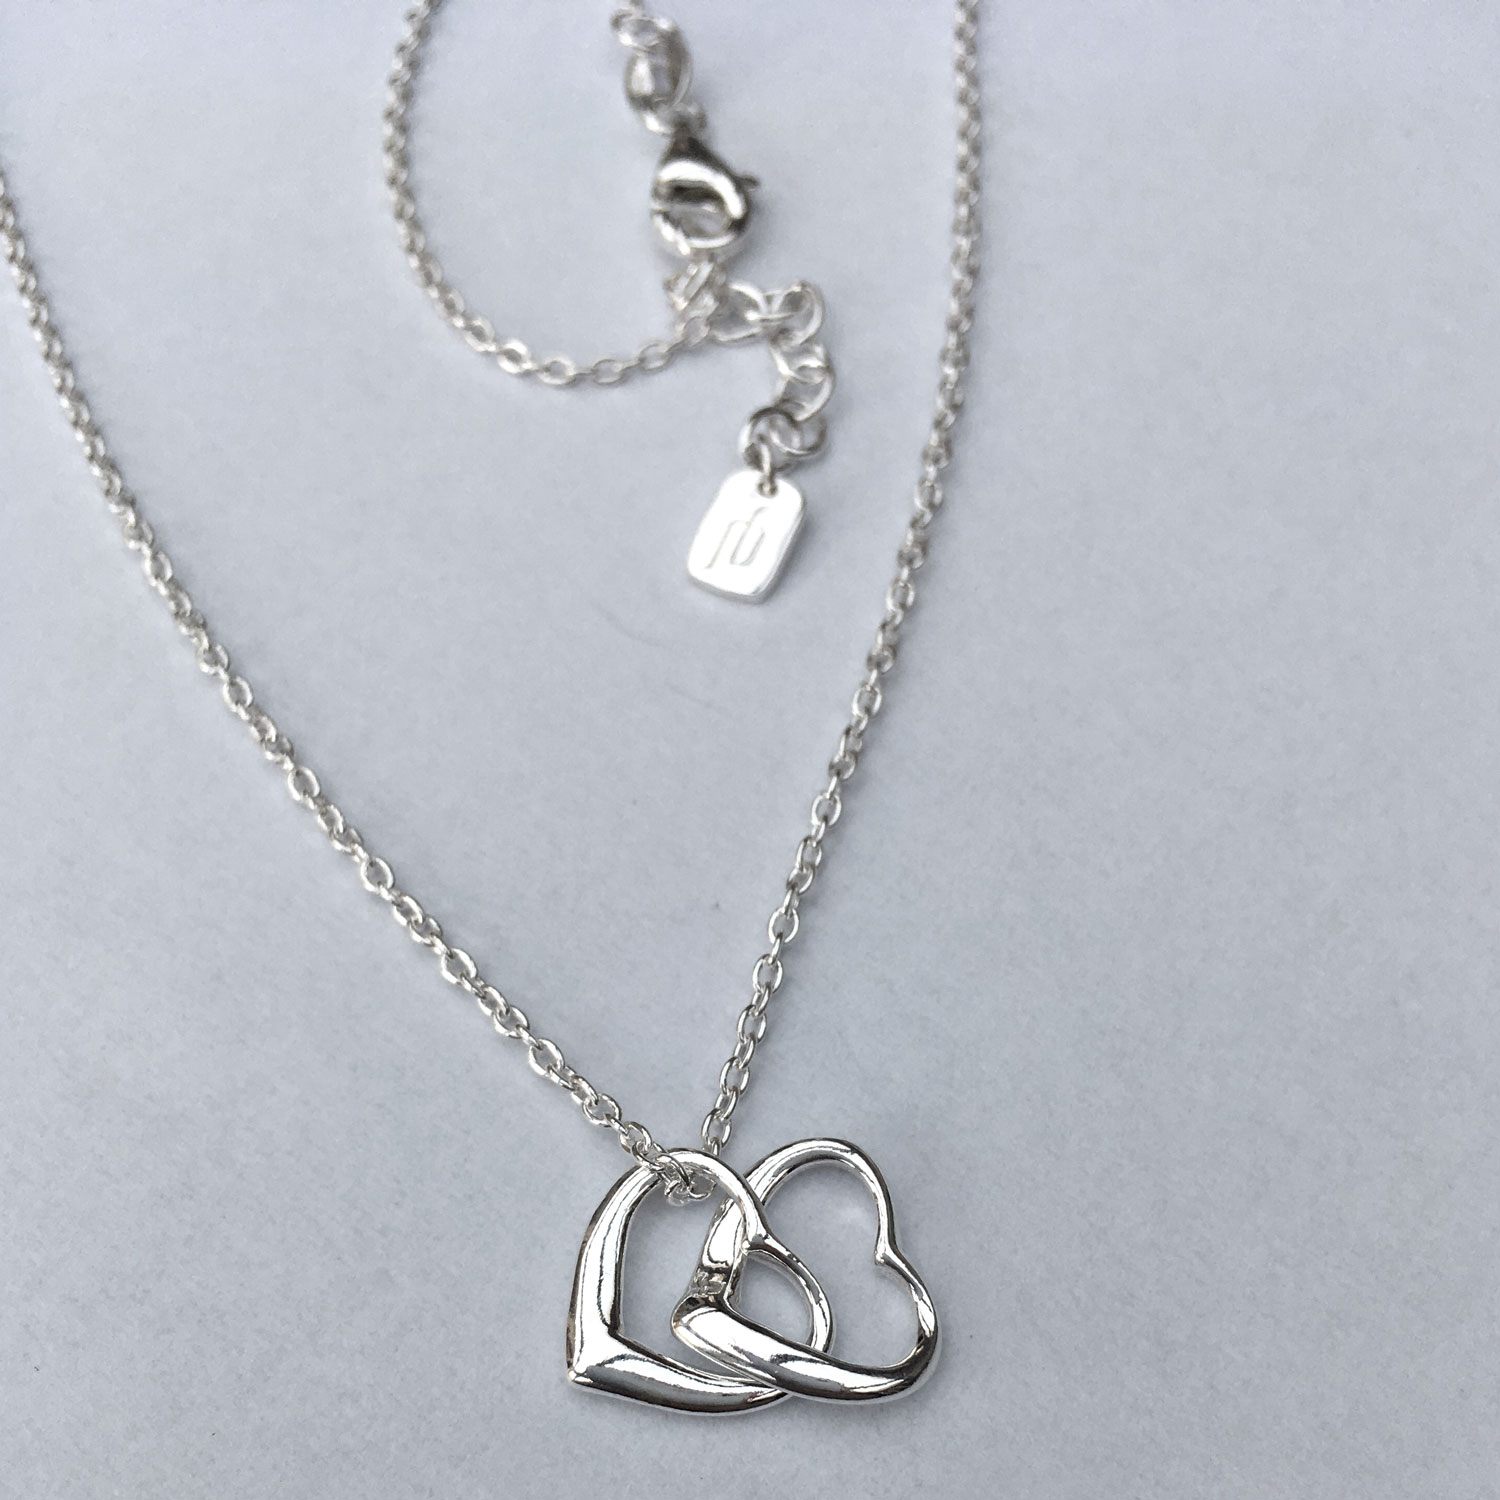 herz kette silber 40 42 cm love nature shanti boutique yoga spiritueller schmuck. Black Bedroom Furniture Sets. Home Design Ideas